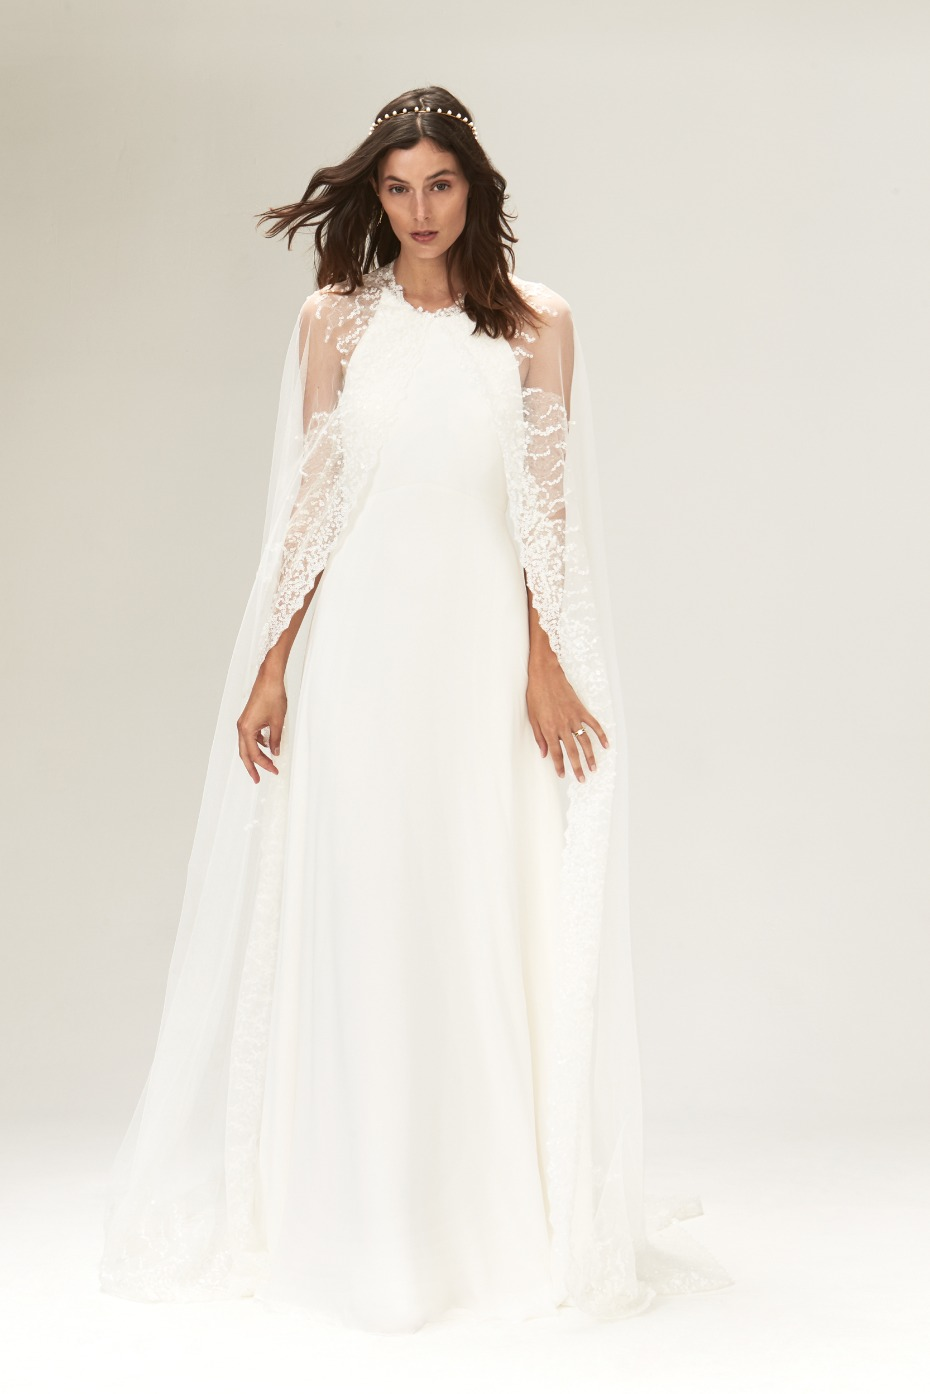 Savannah Miller Bridal Fall 2019 Collection